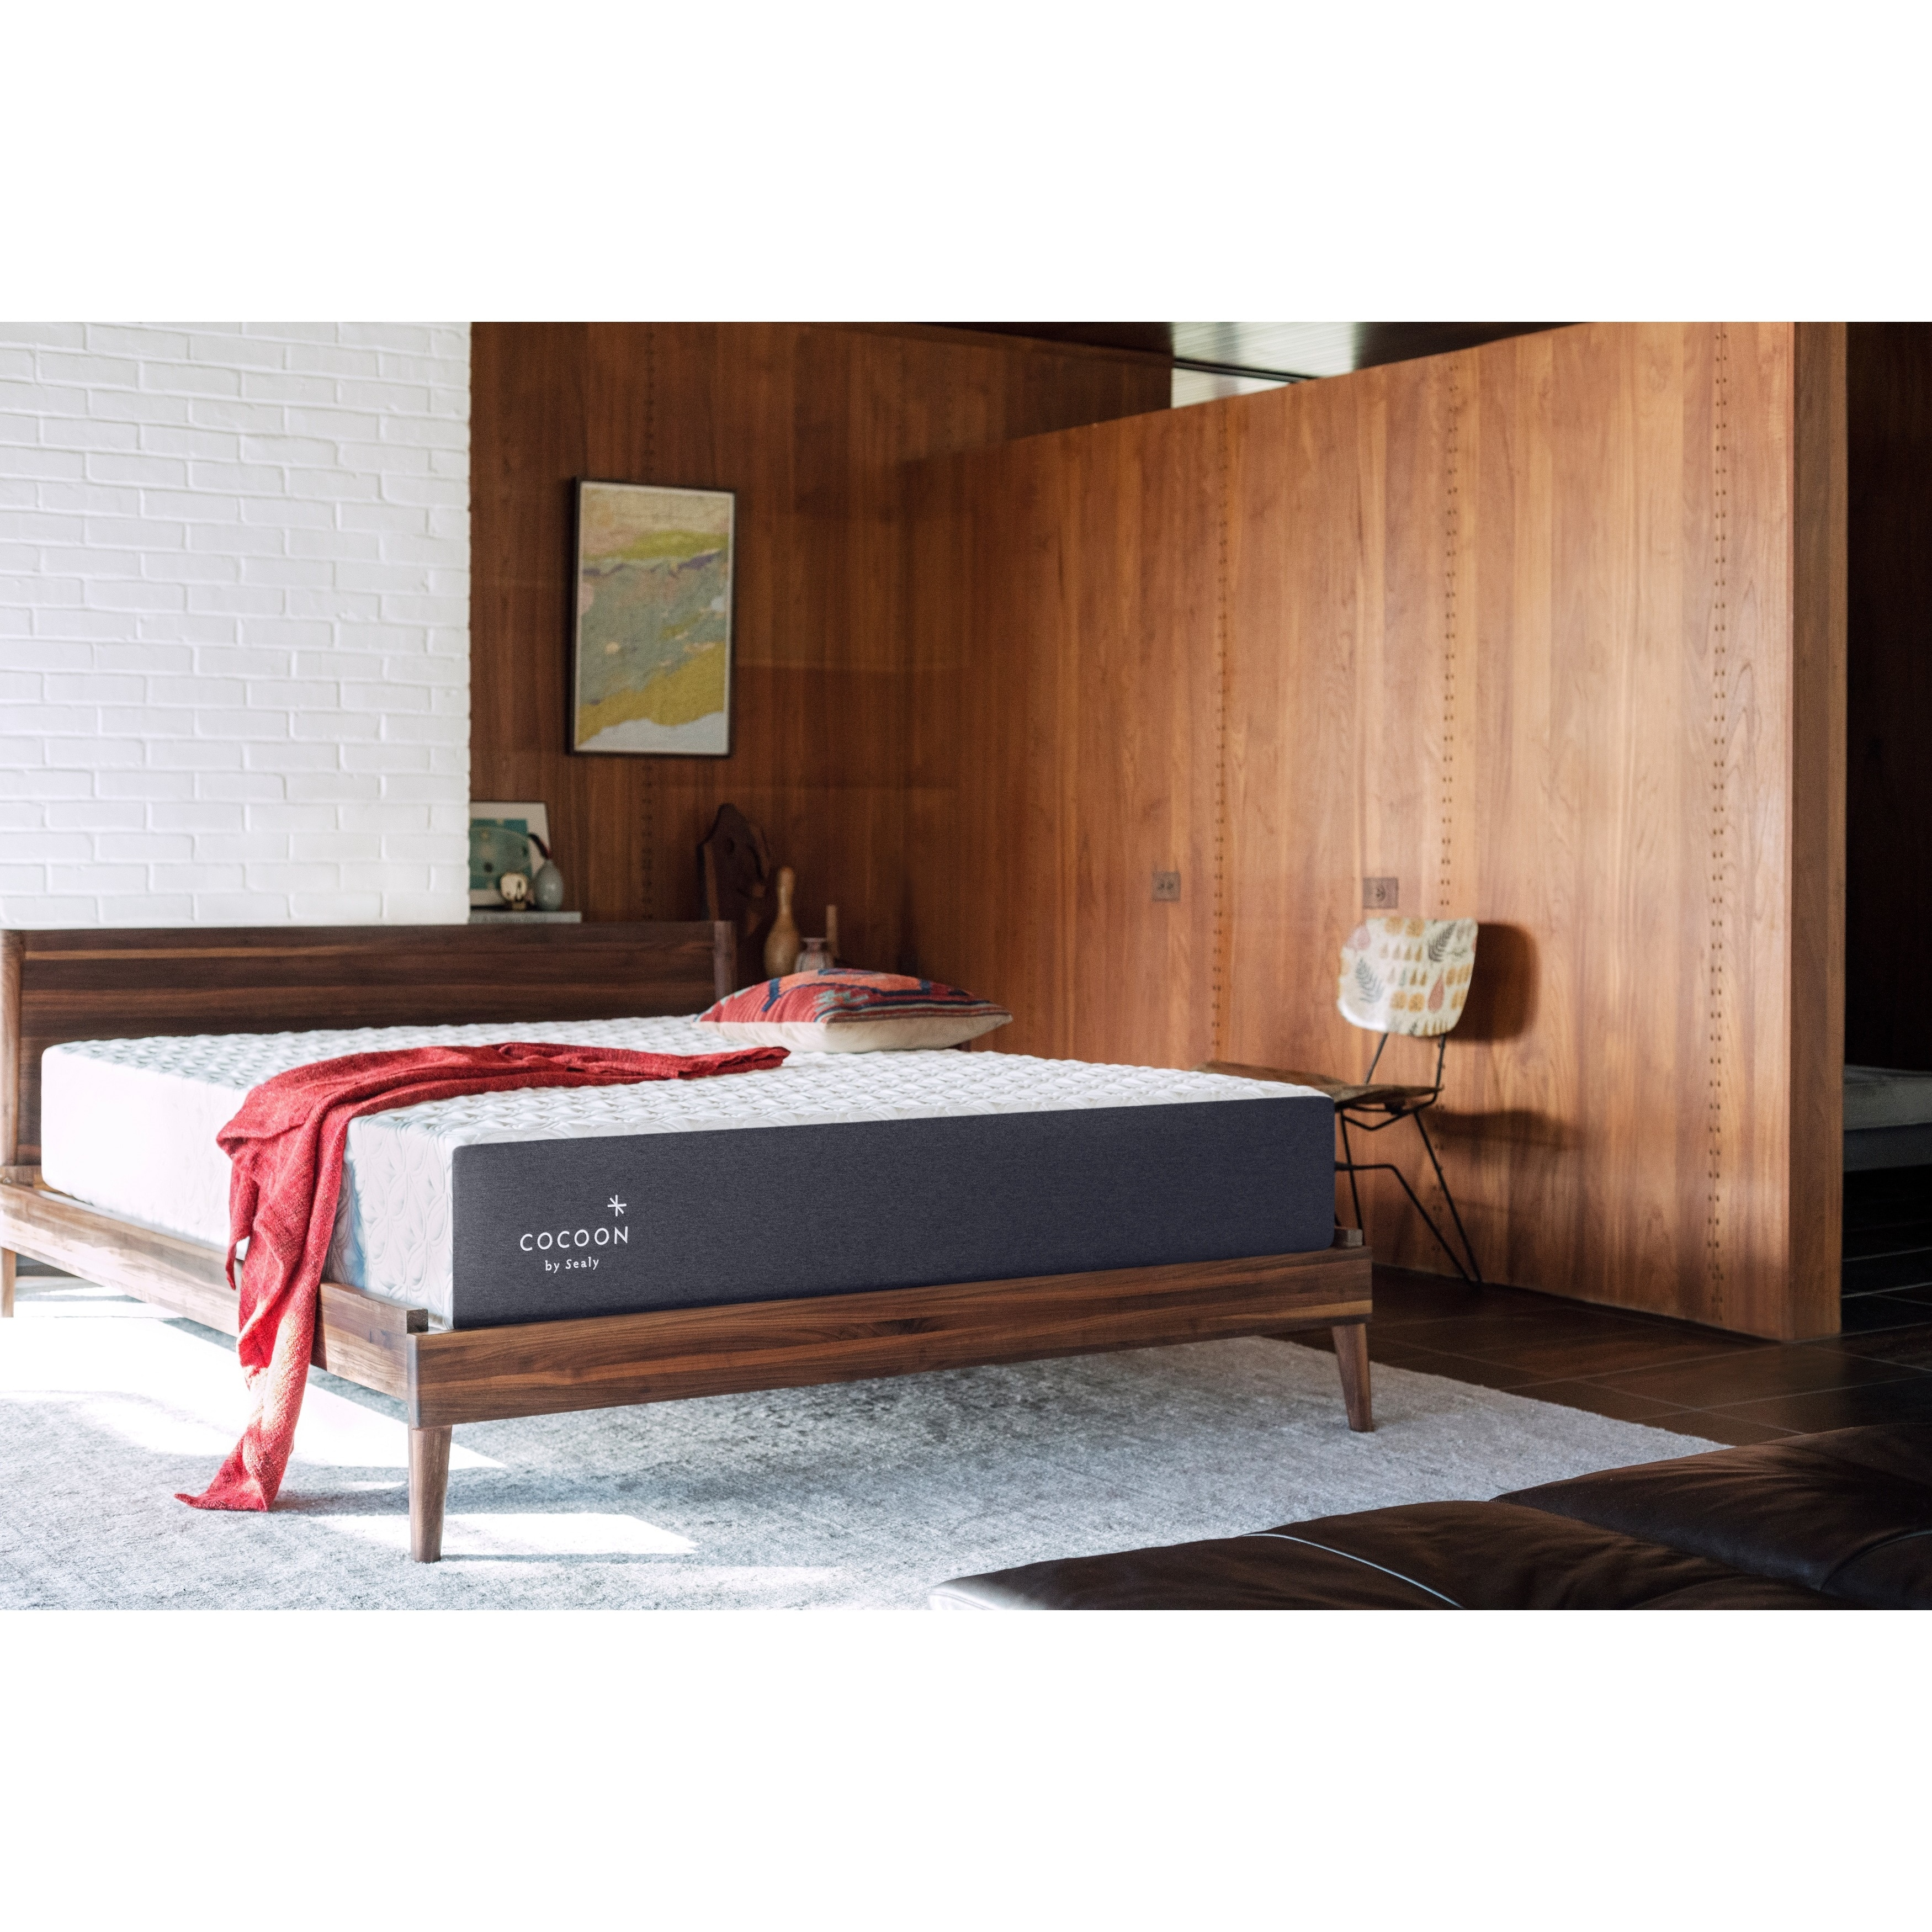 Sealy Cocoon Classic King-size Memory Foam Mattress (Firm...